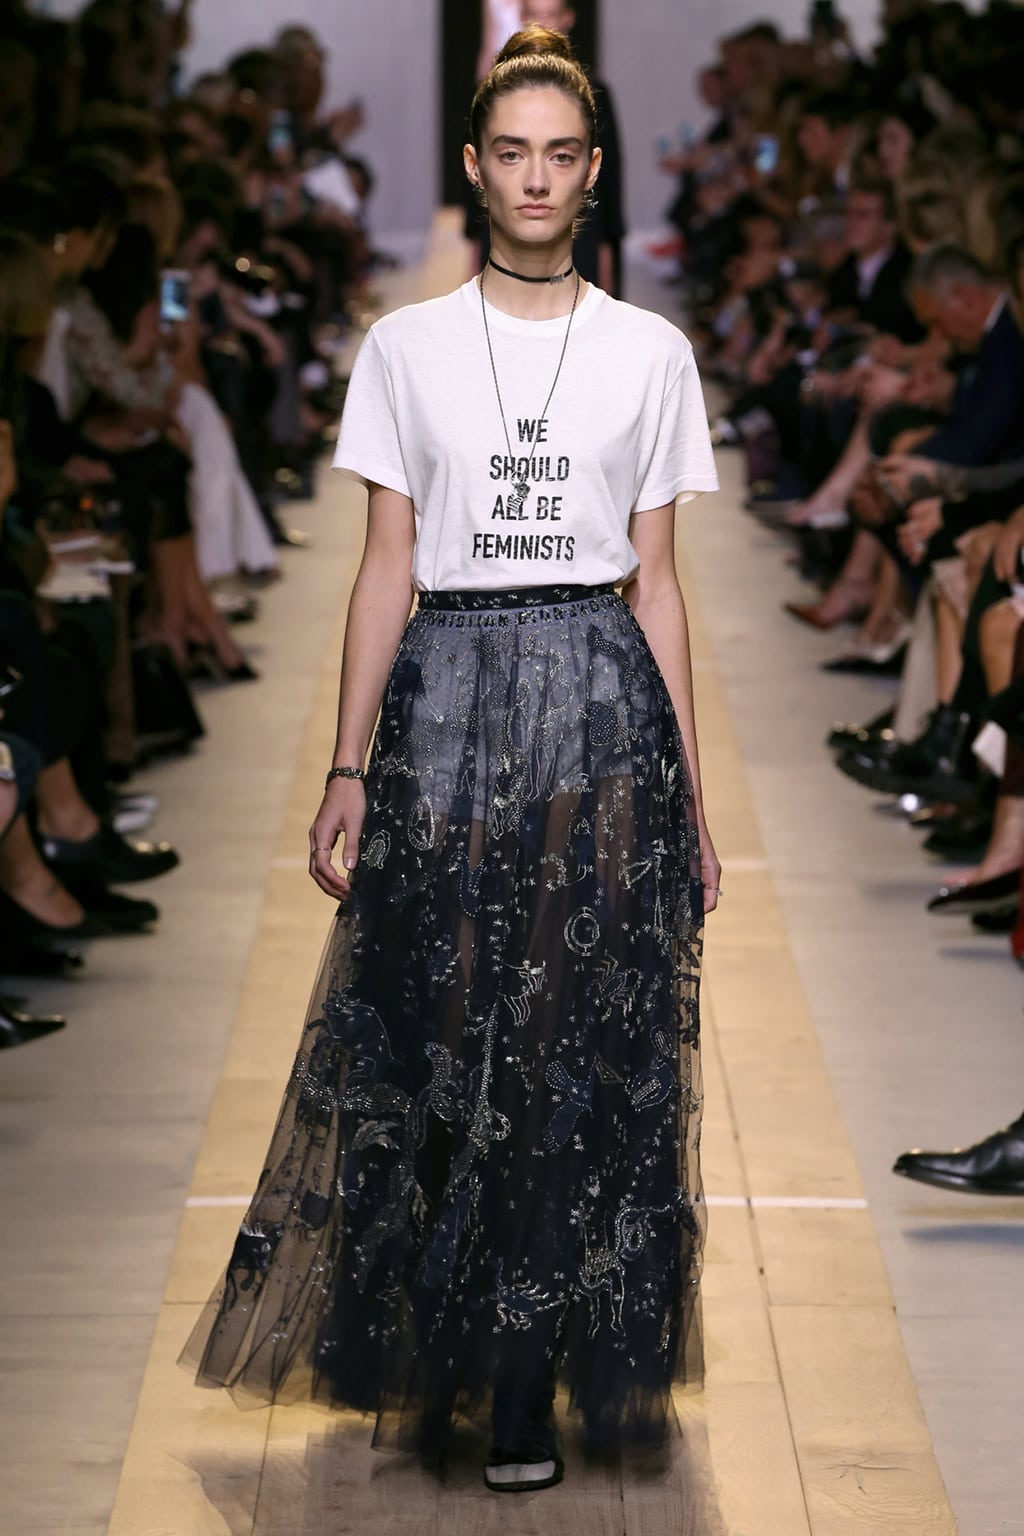 Dior Spring 2017 look 2: Model wearing a We Should All Be Feminists tee shirt, navy embroidered tulle skirt, and chokers